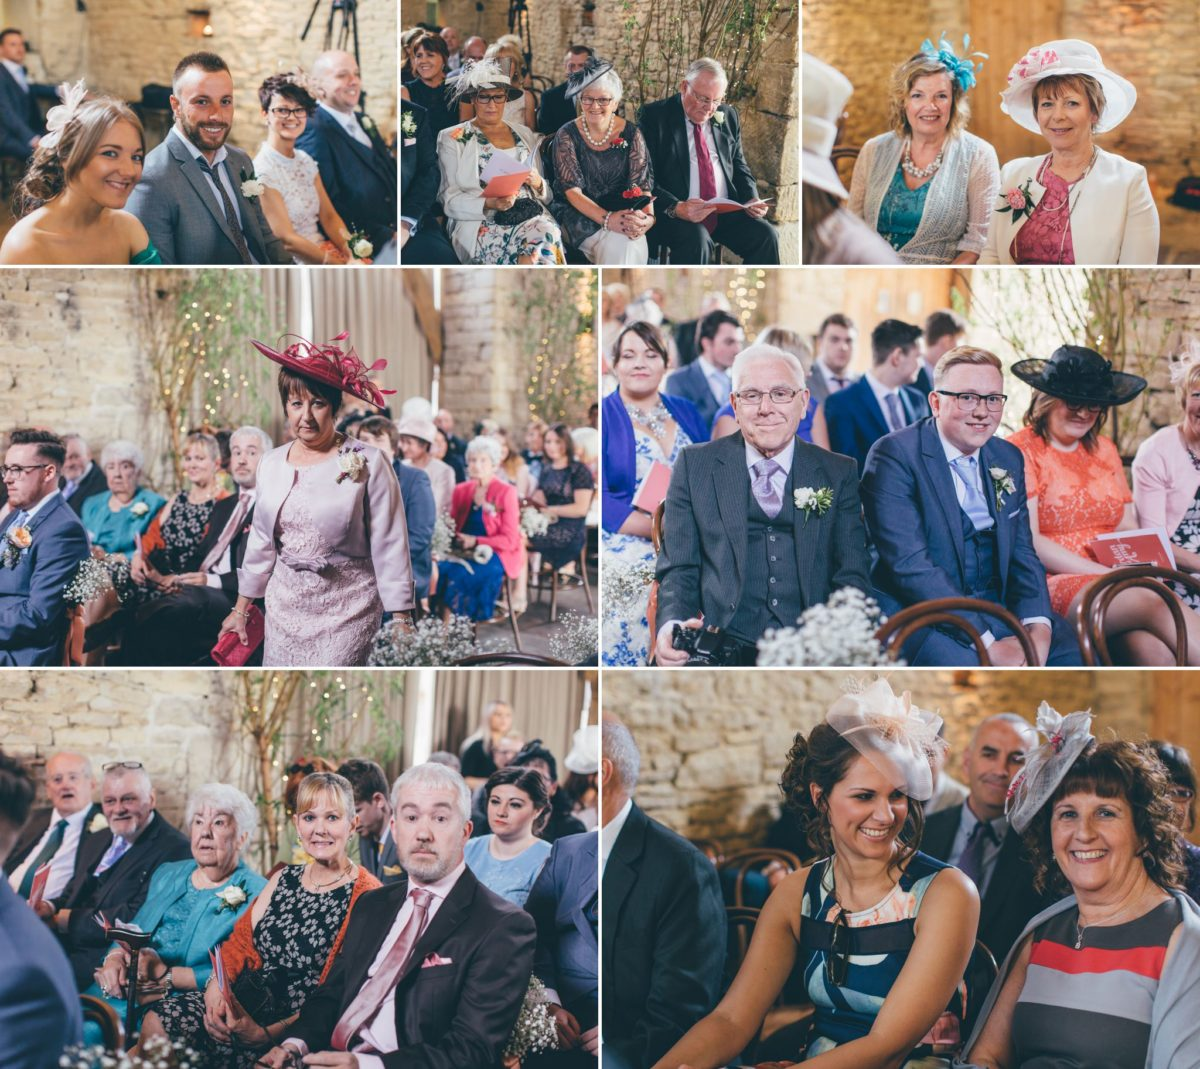 cripps_barn_gloucesterhsire_welsh_wedding_photographer_rachel_lambert_photography_jordan_amy_ 48